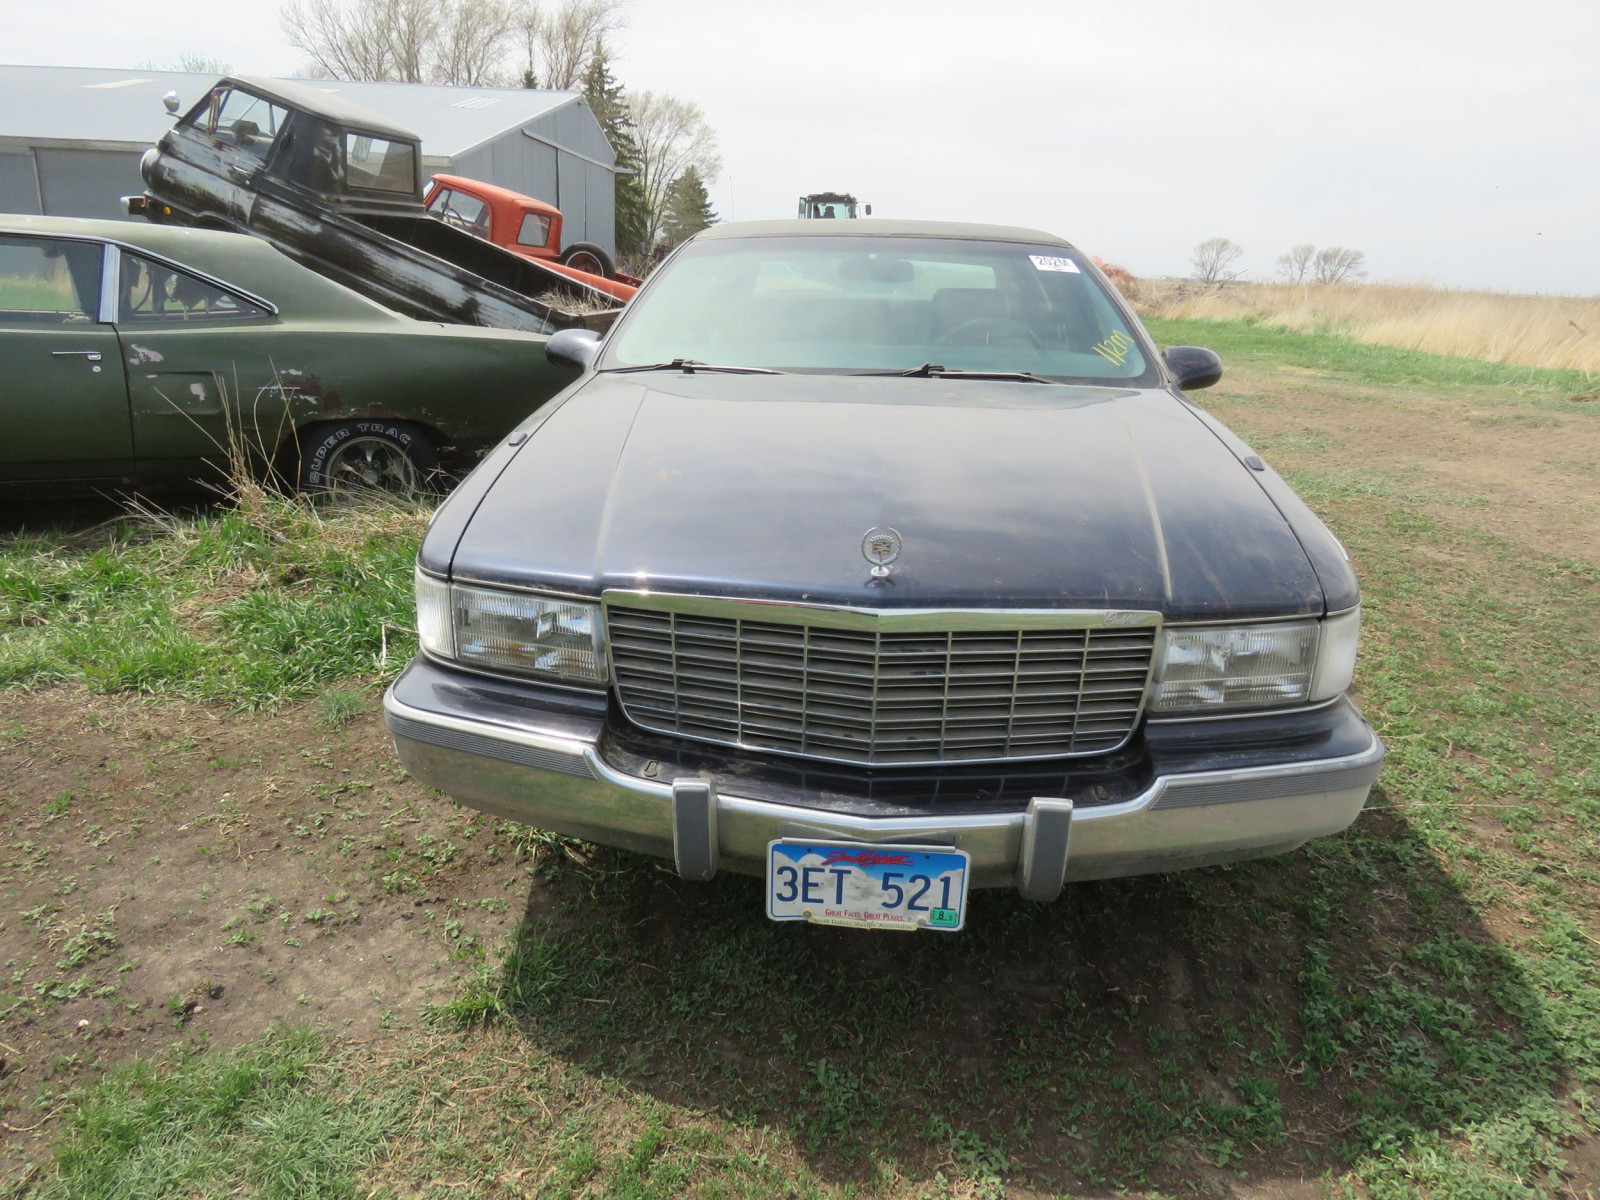 1996 Cadillac Fleetwood Brougham - Image 2